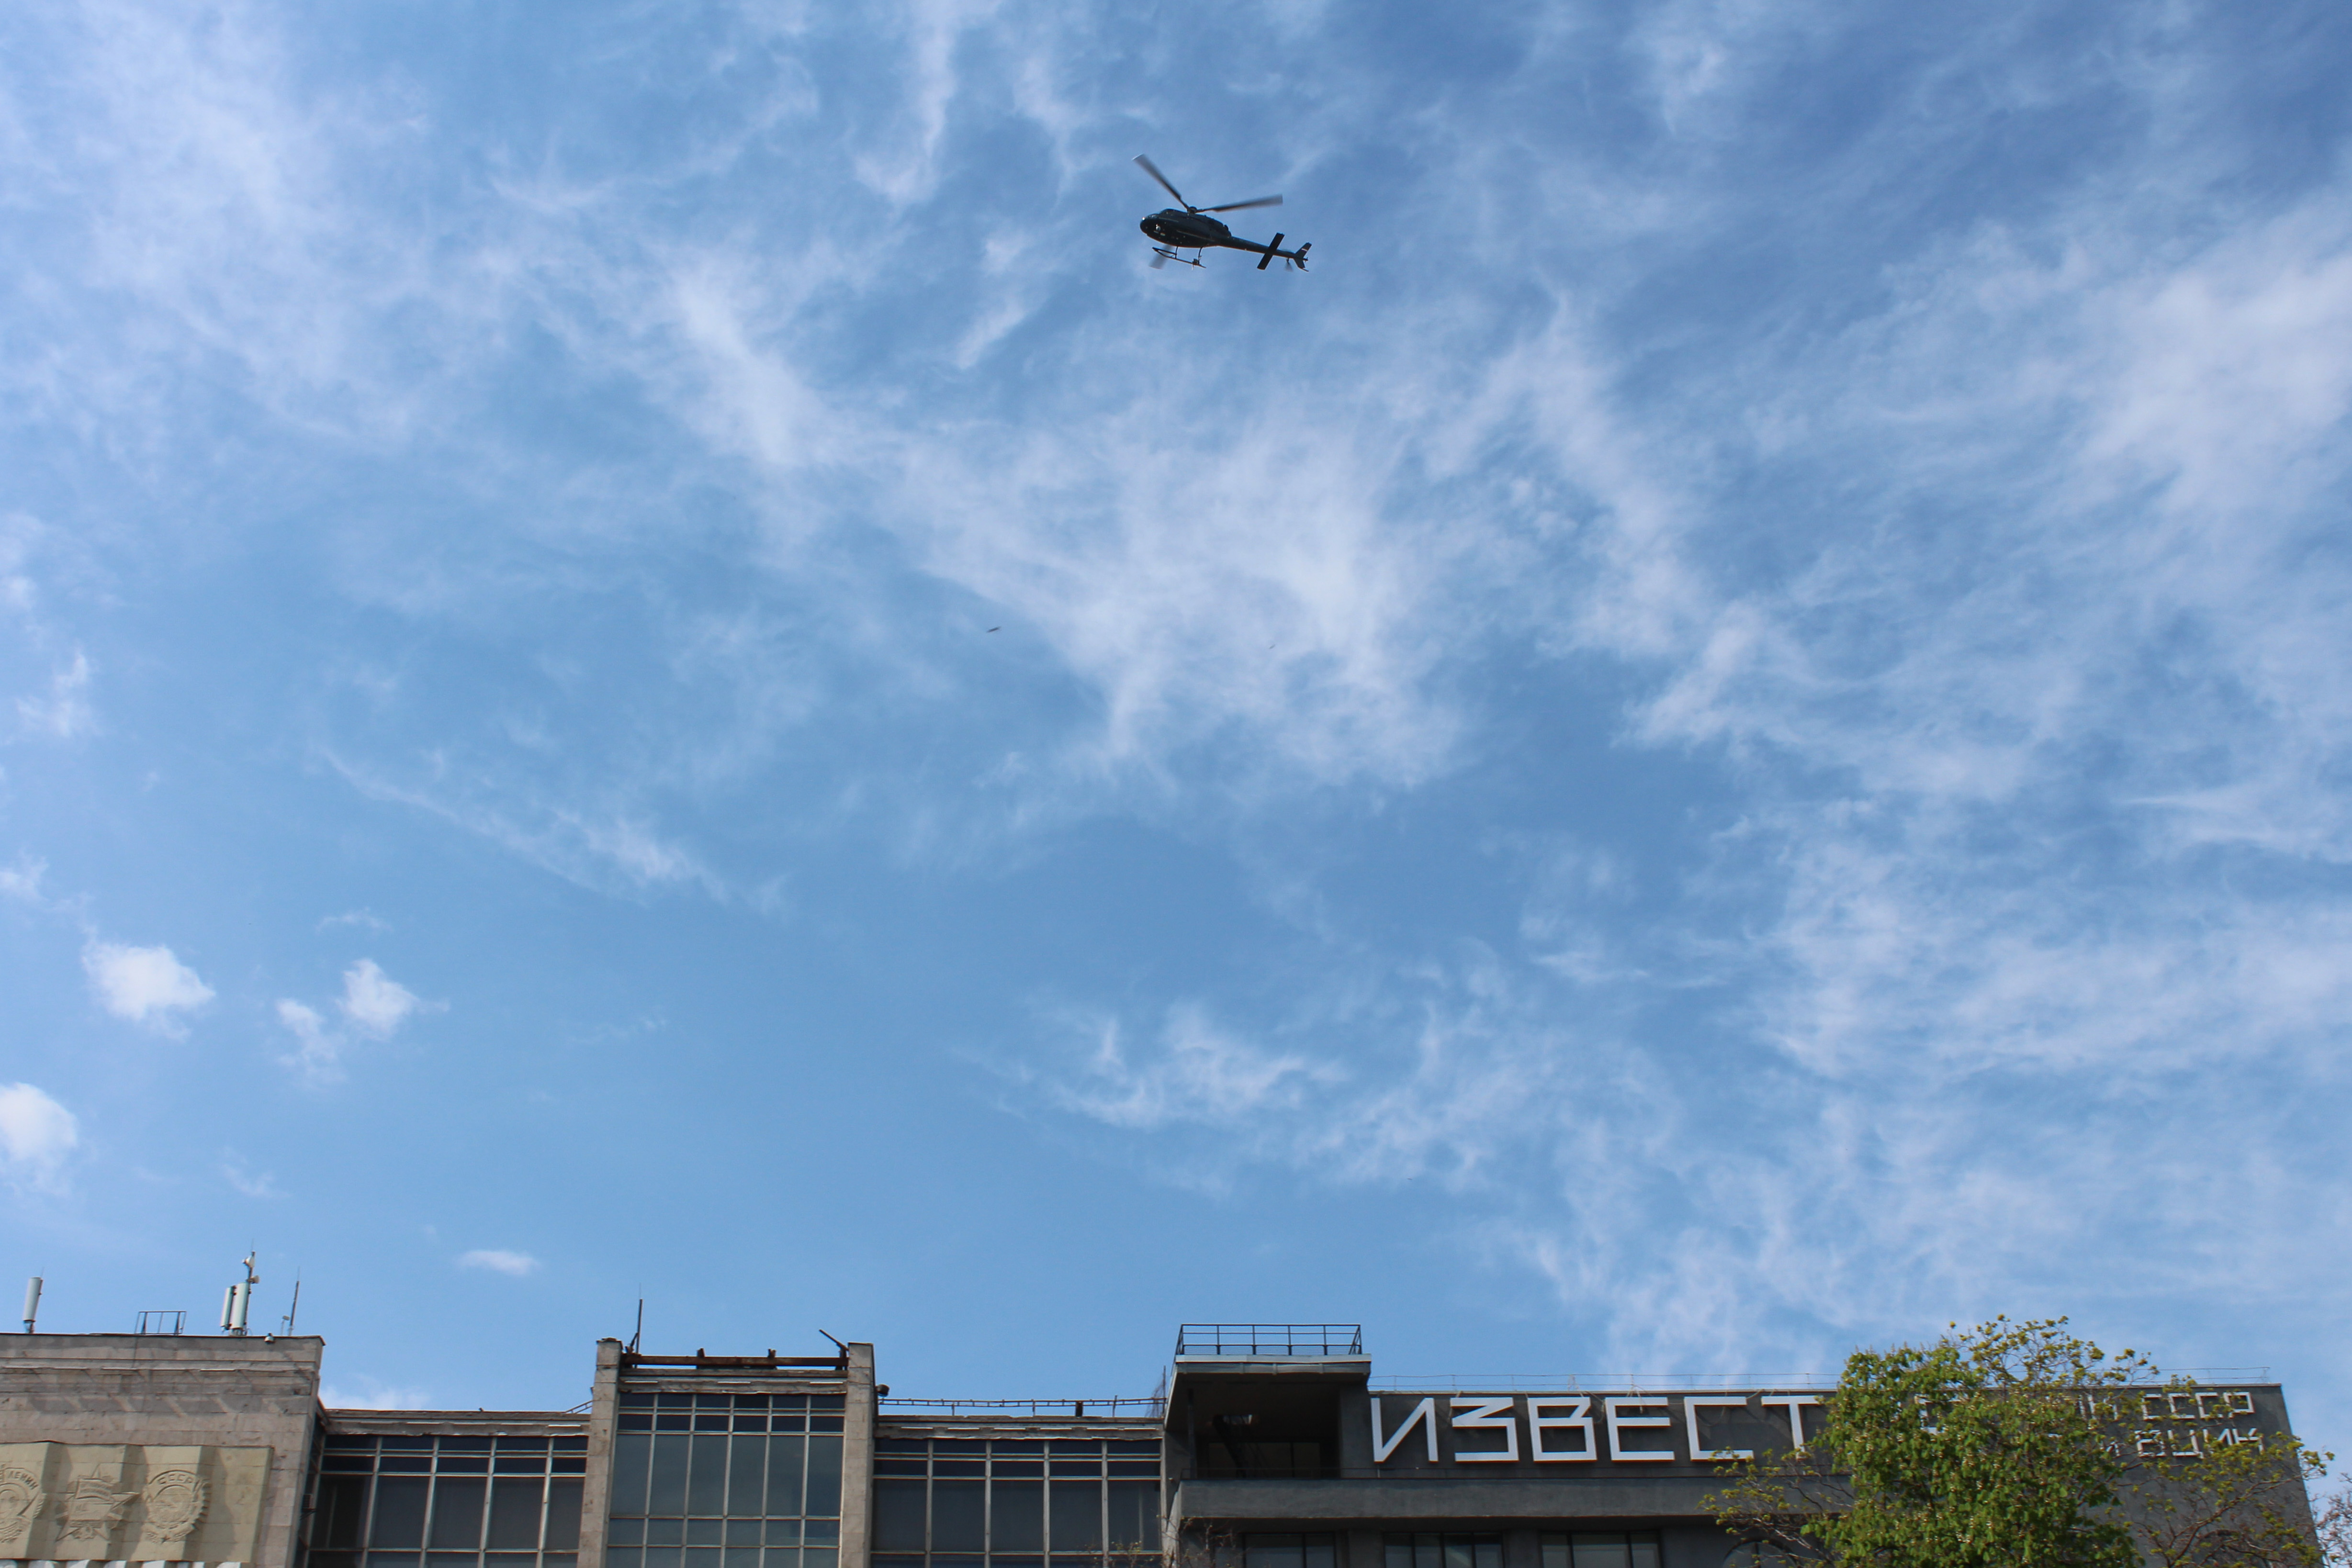 A helicopter was flying during protests